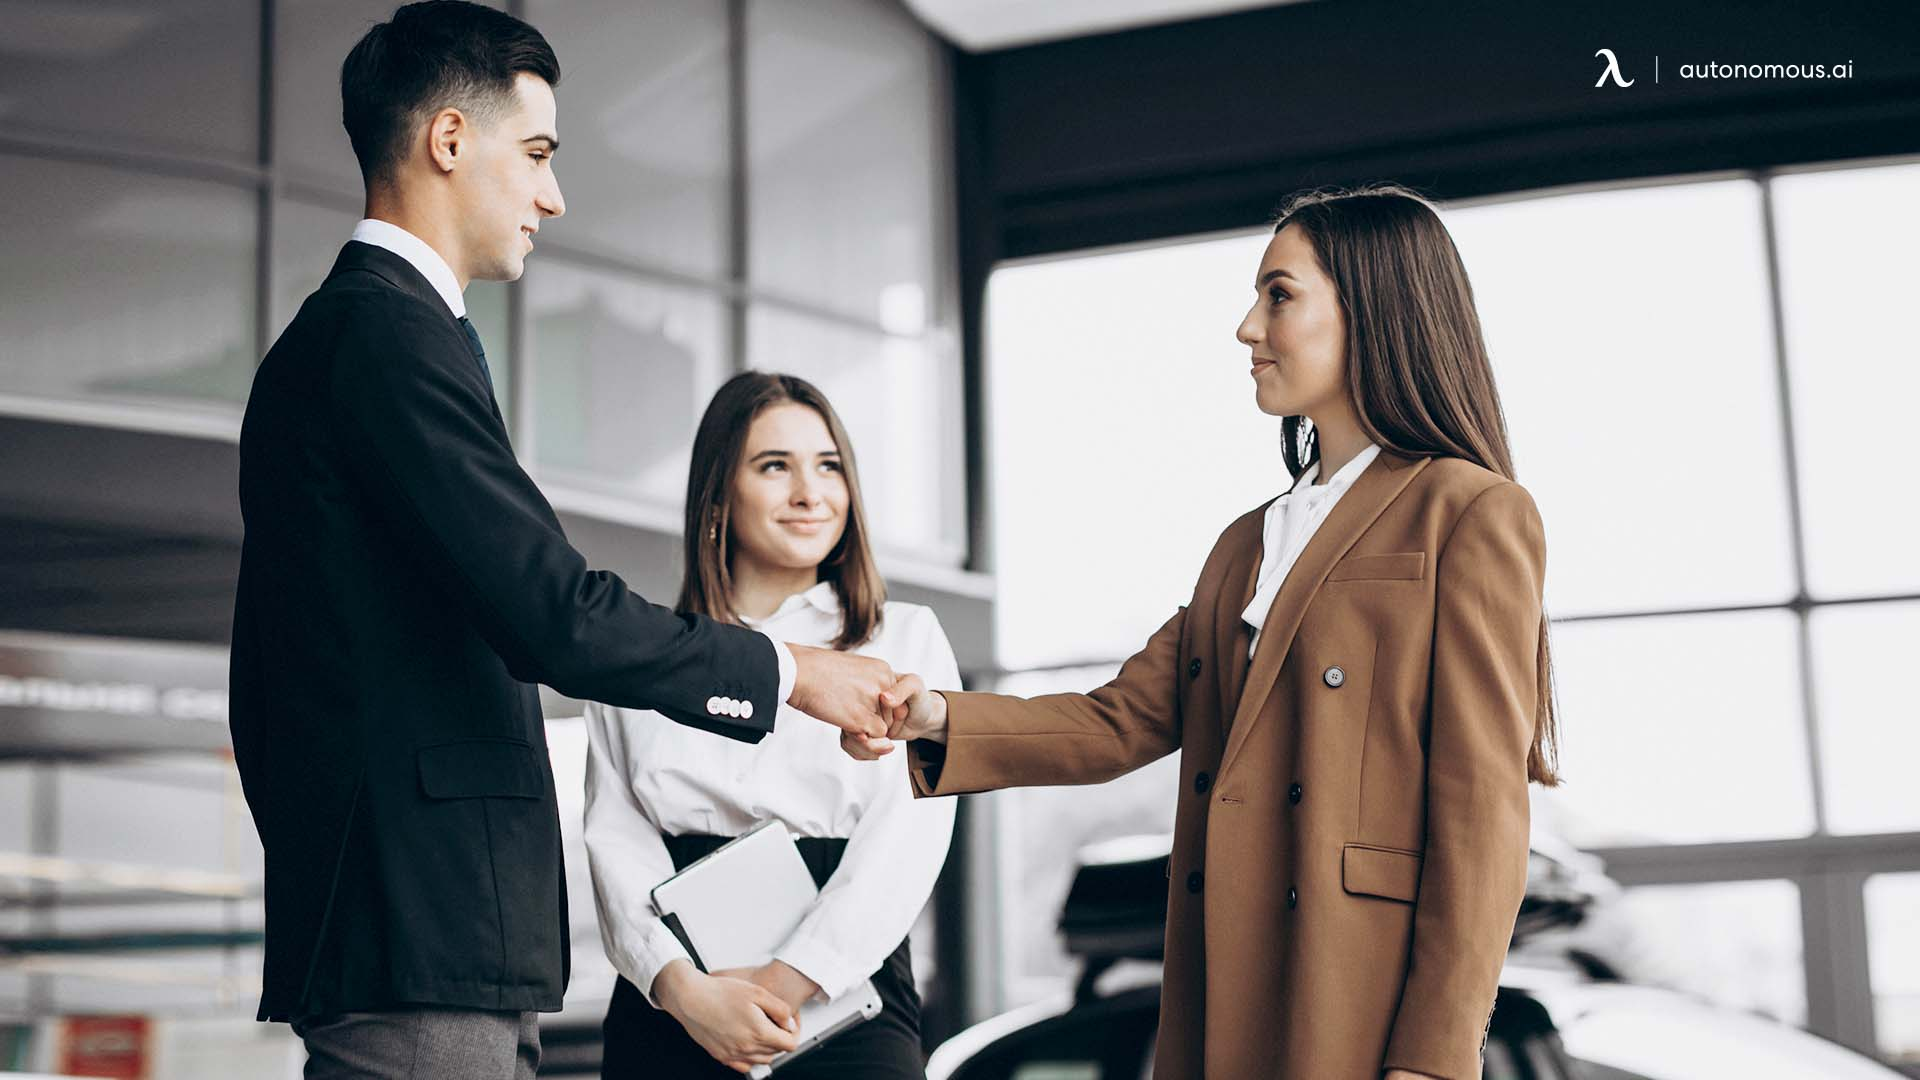 Find the best business partners